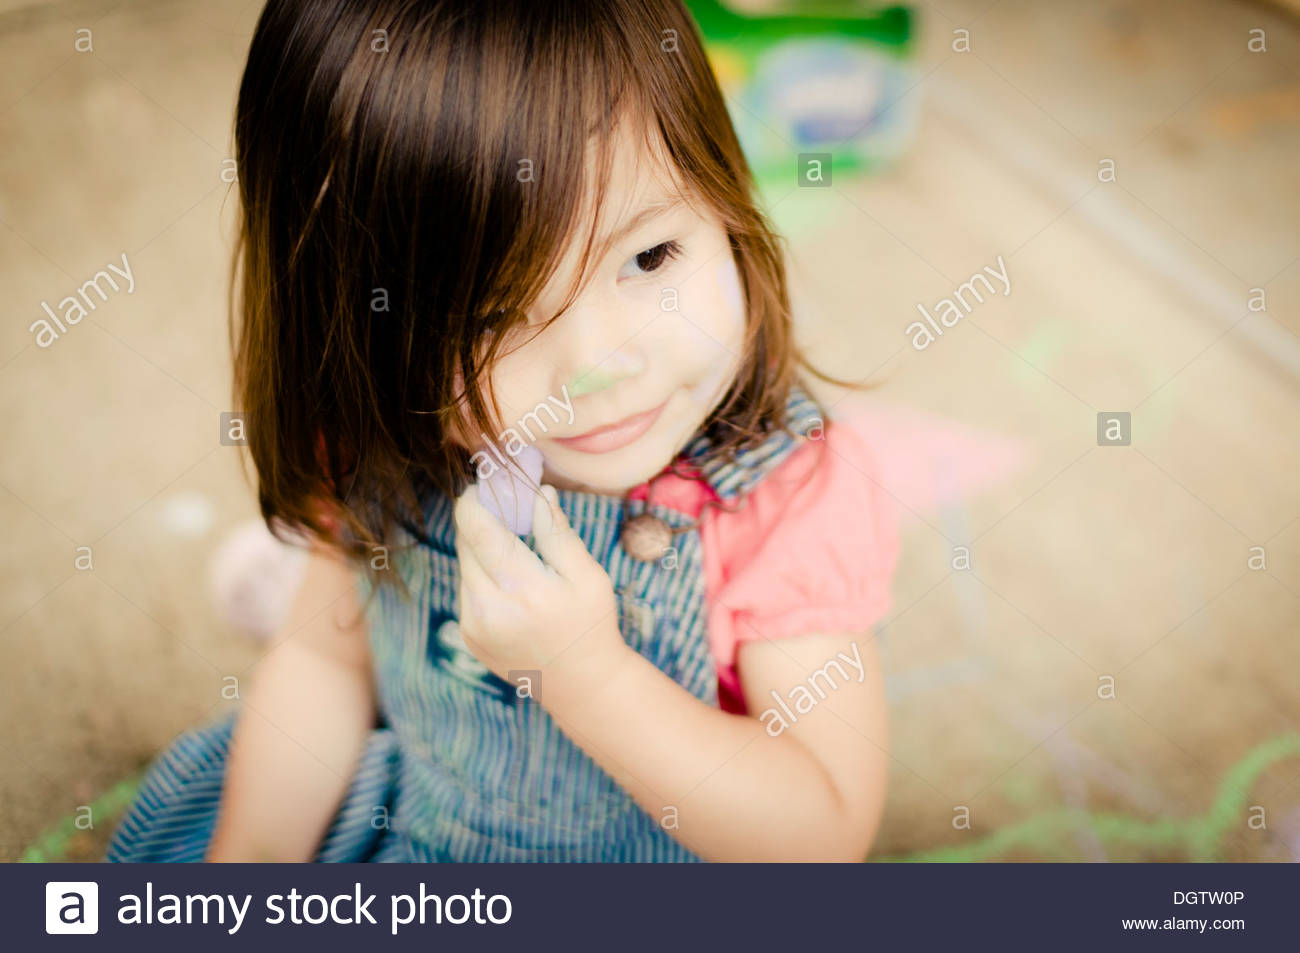 Toddler playing with chalk on the sidewalk. - Stock Image